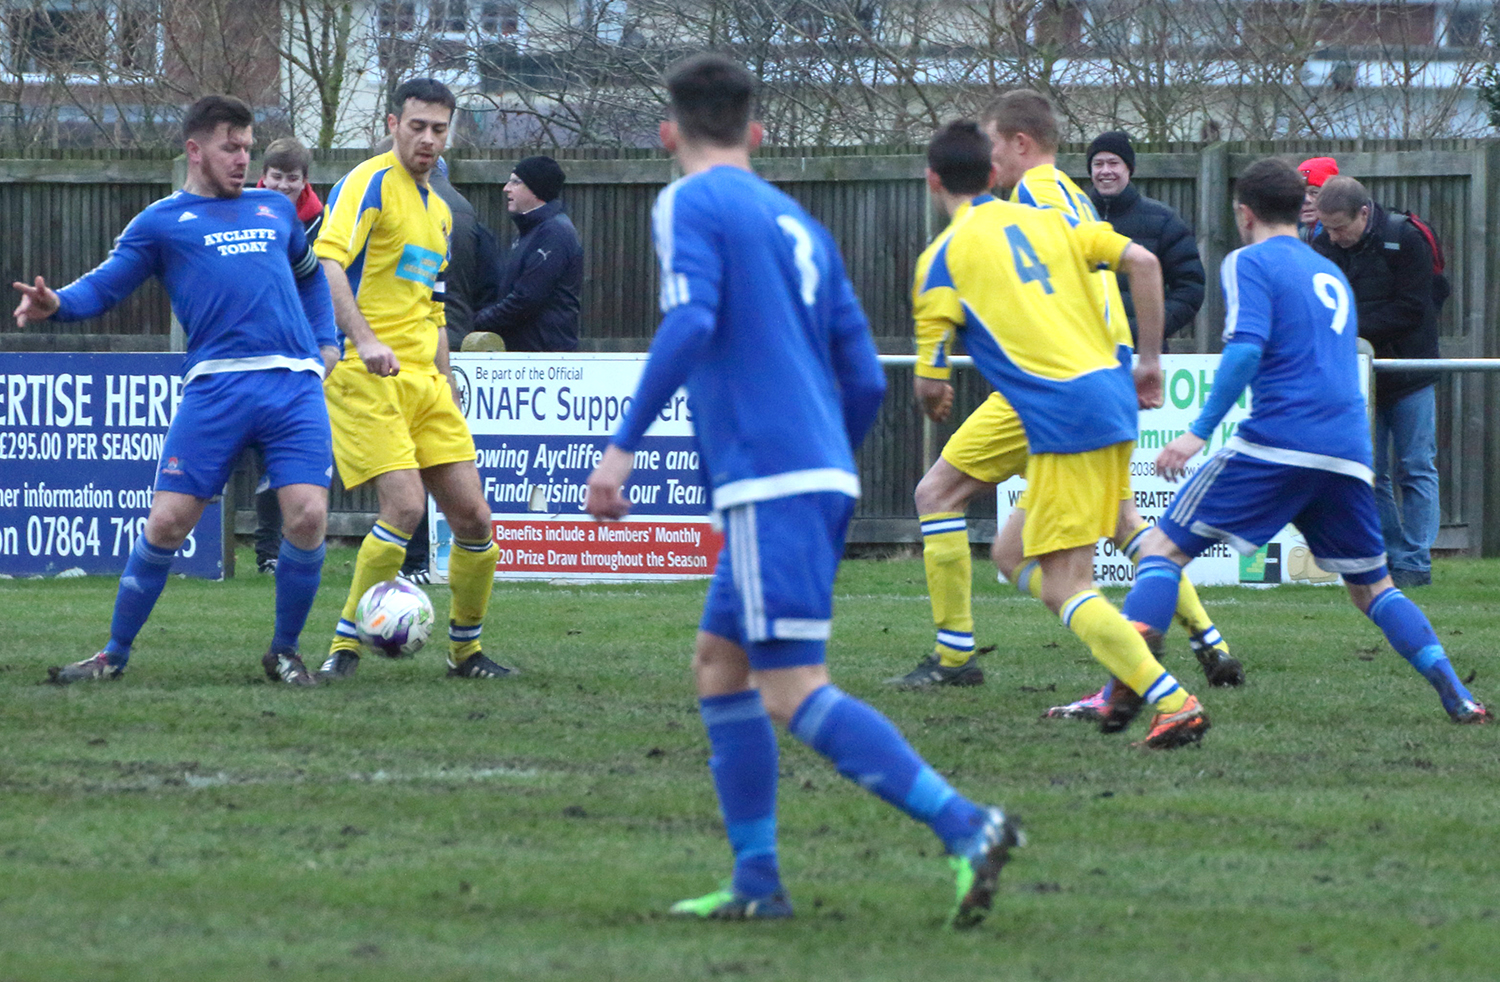 Aycliffe FC in Good Form